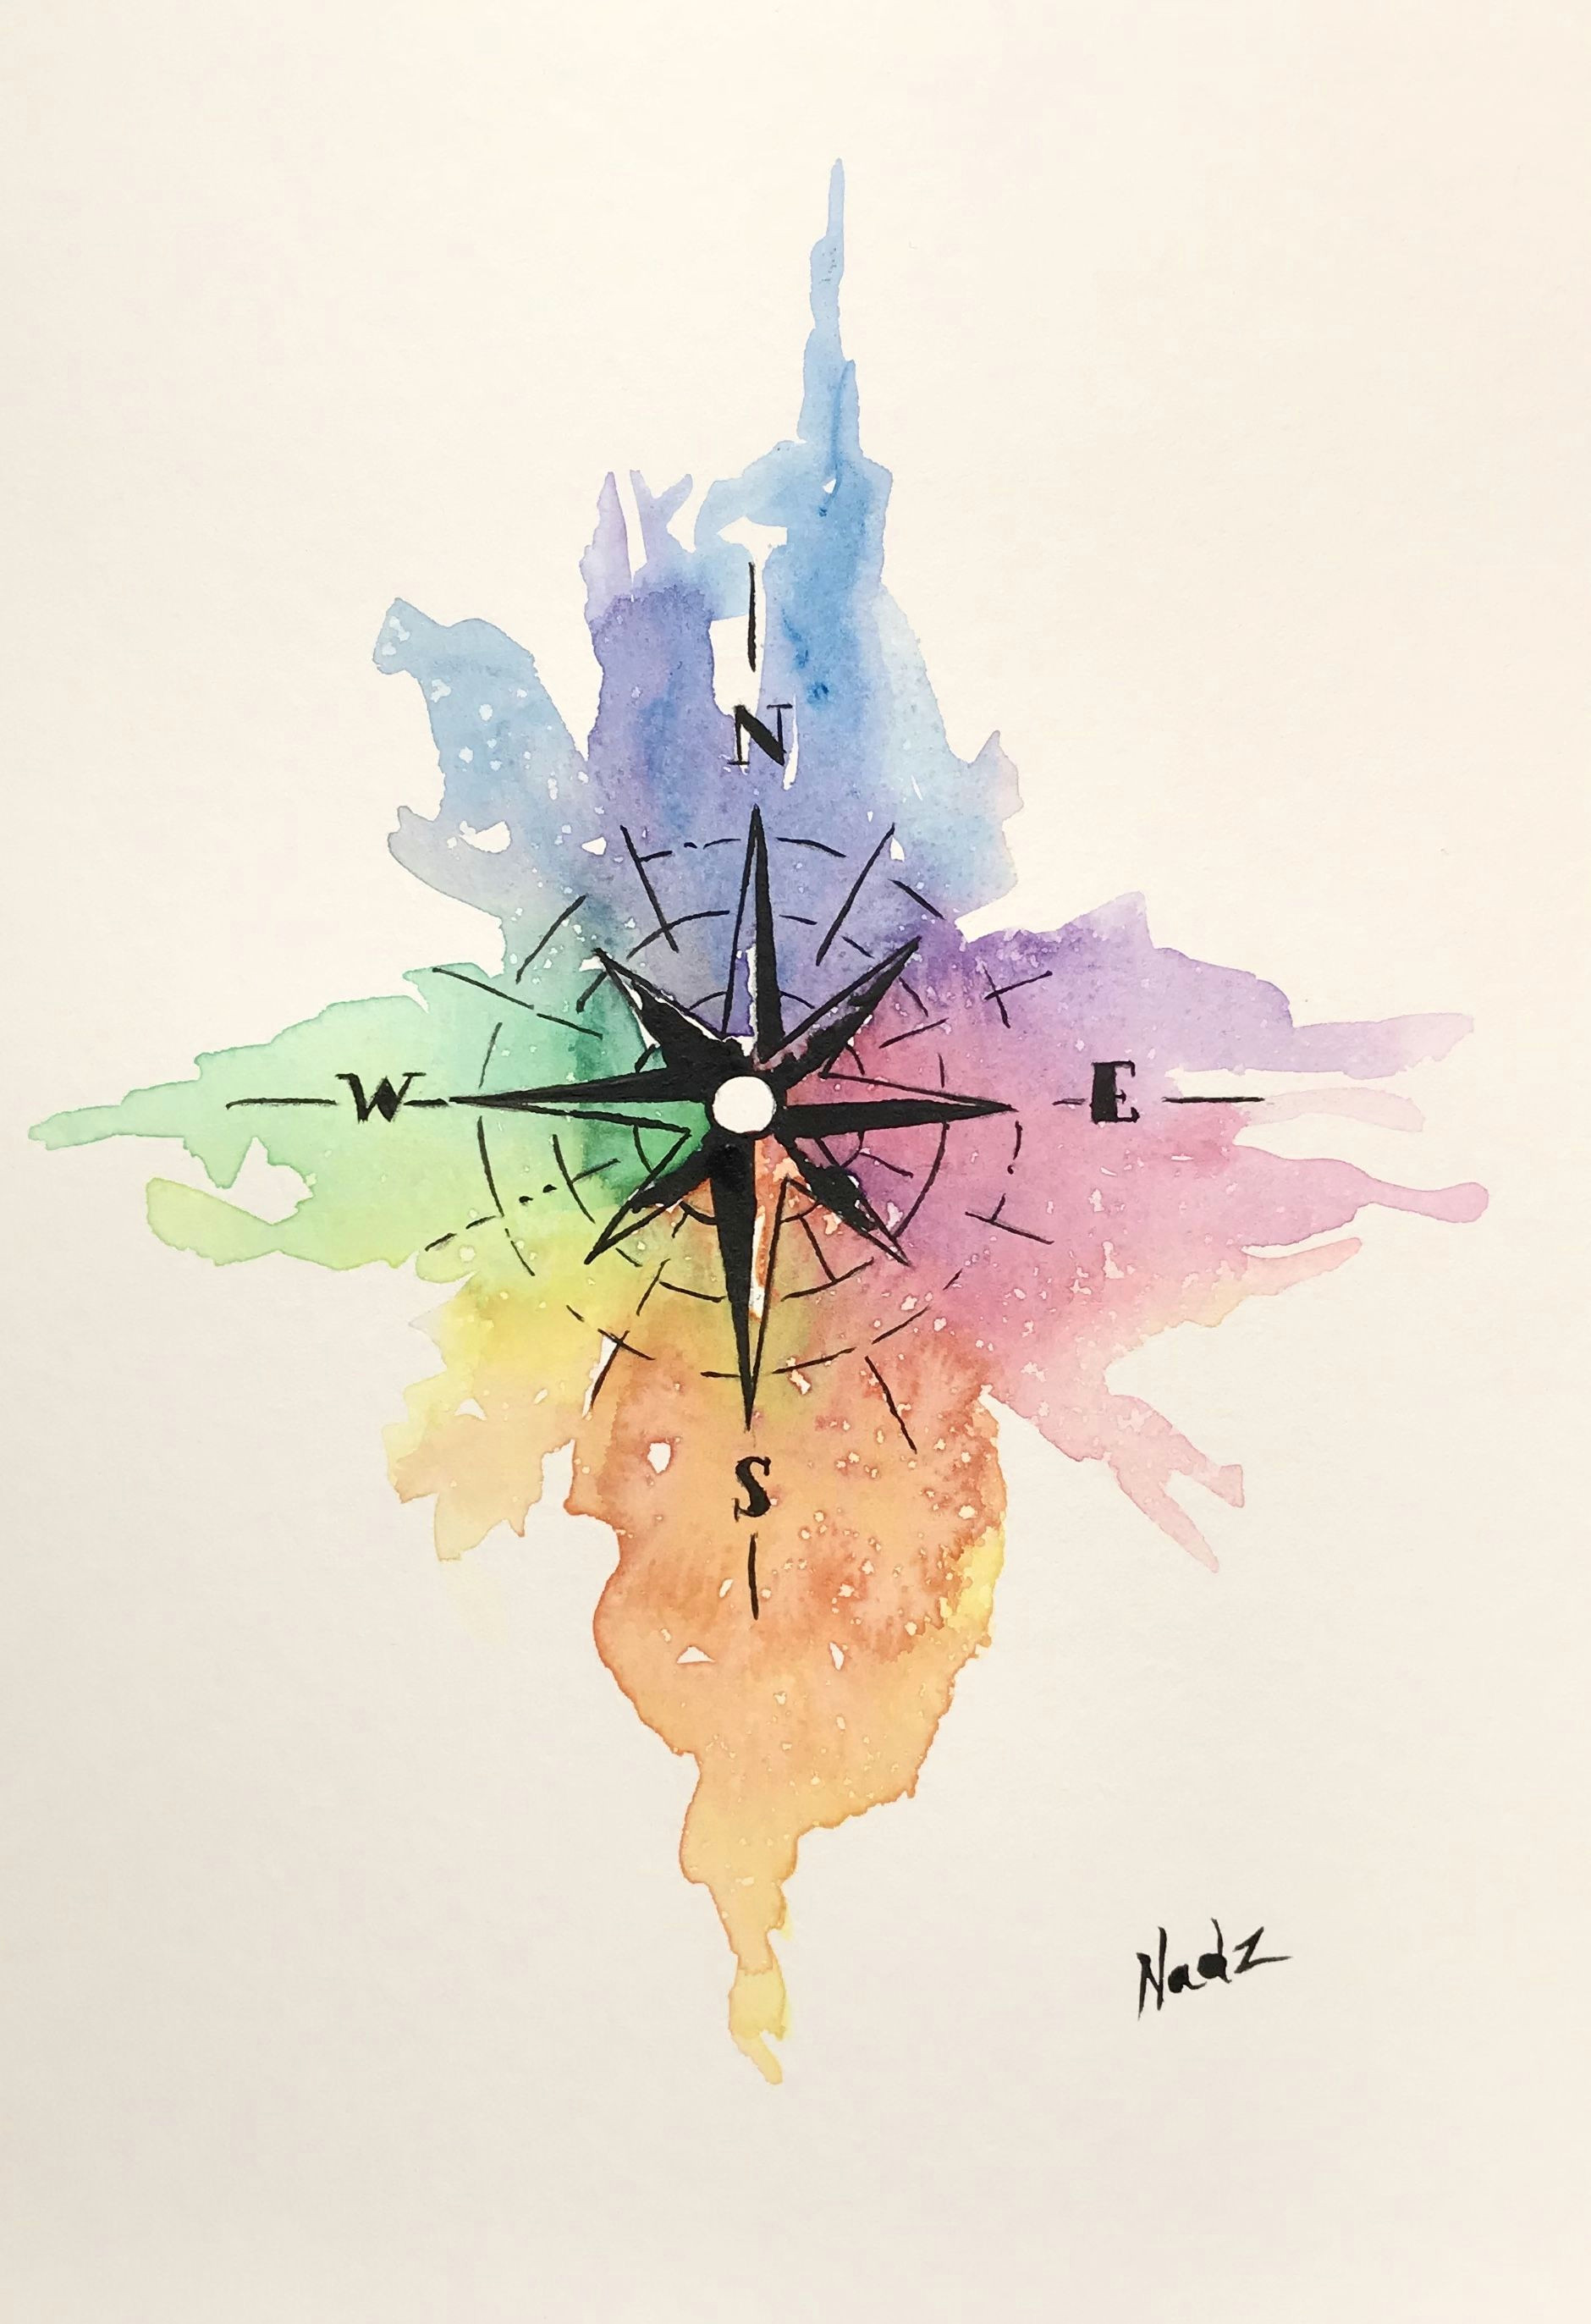 Easy Drawing Using Watercolor Watercolor Painting Etsy Compass Gift Idea Bible Art